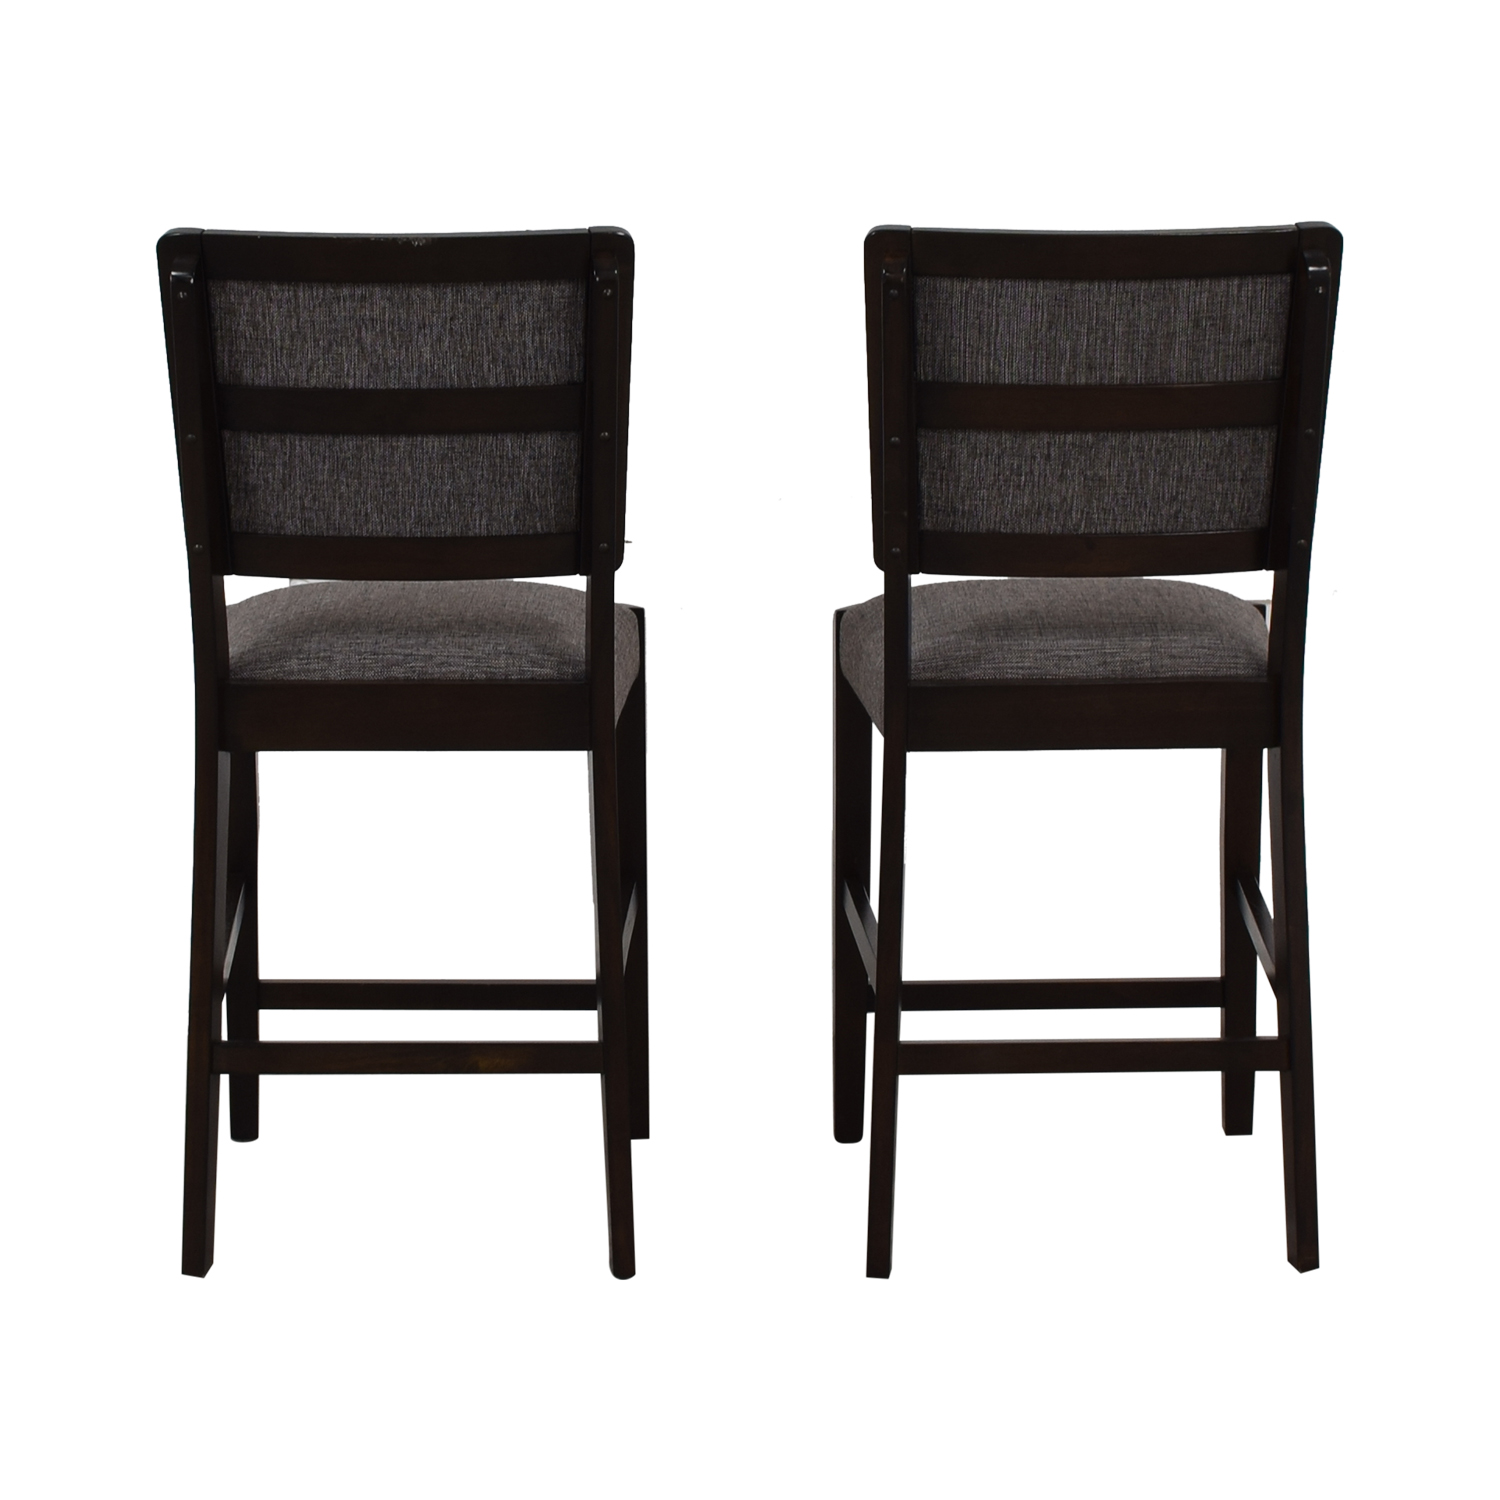 Raymour & Flanigan Raymour & Flanigan Grey Upholstered Counter Height Stools Stools